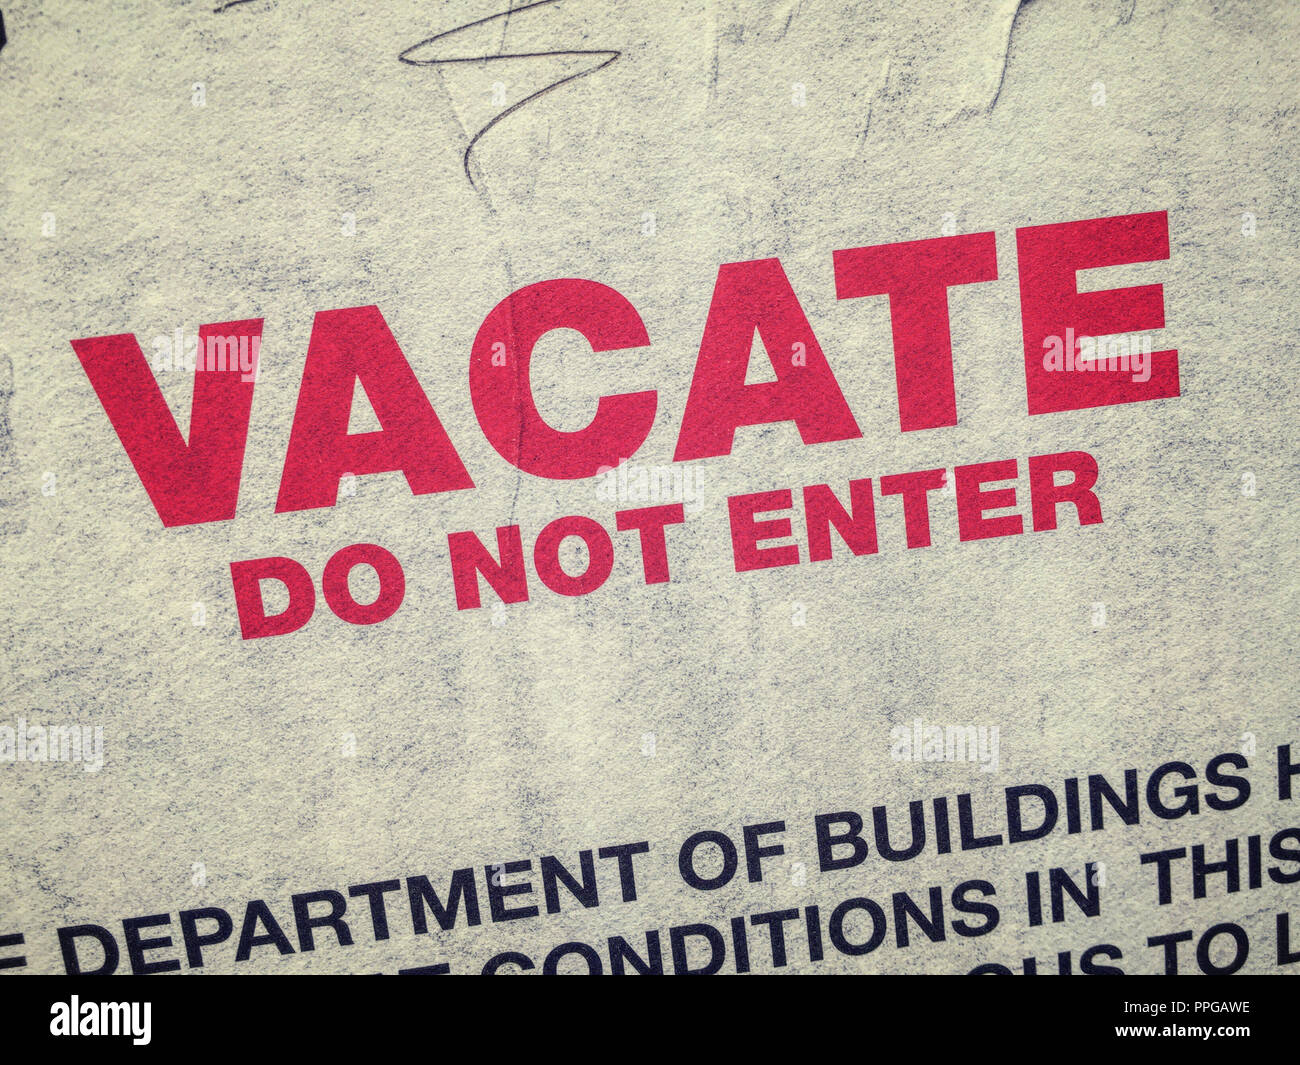 'Vacate Do Not Enter' Sign, USA - Stock Image